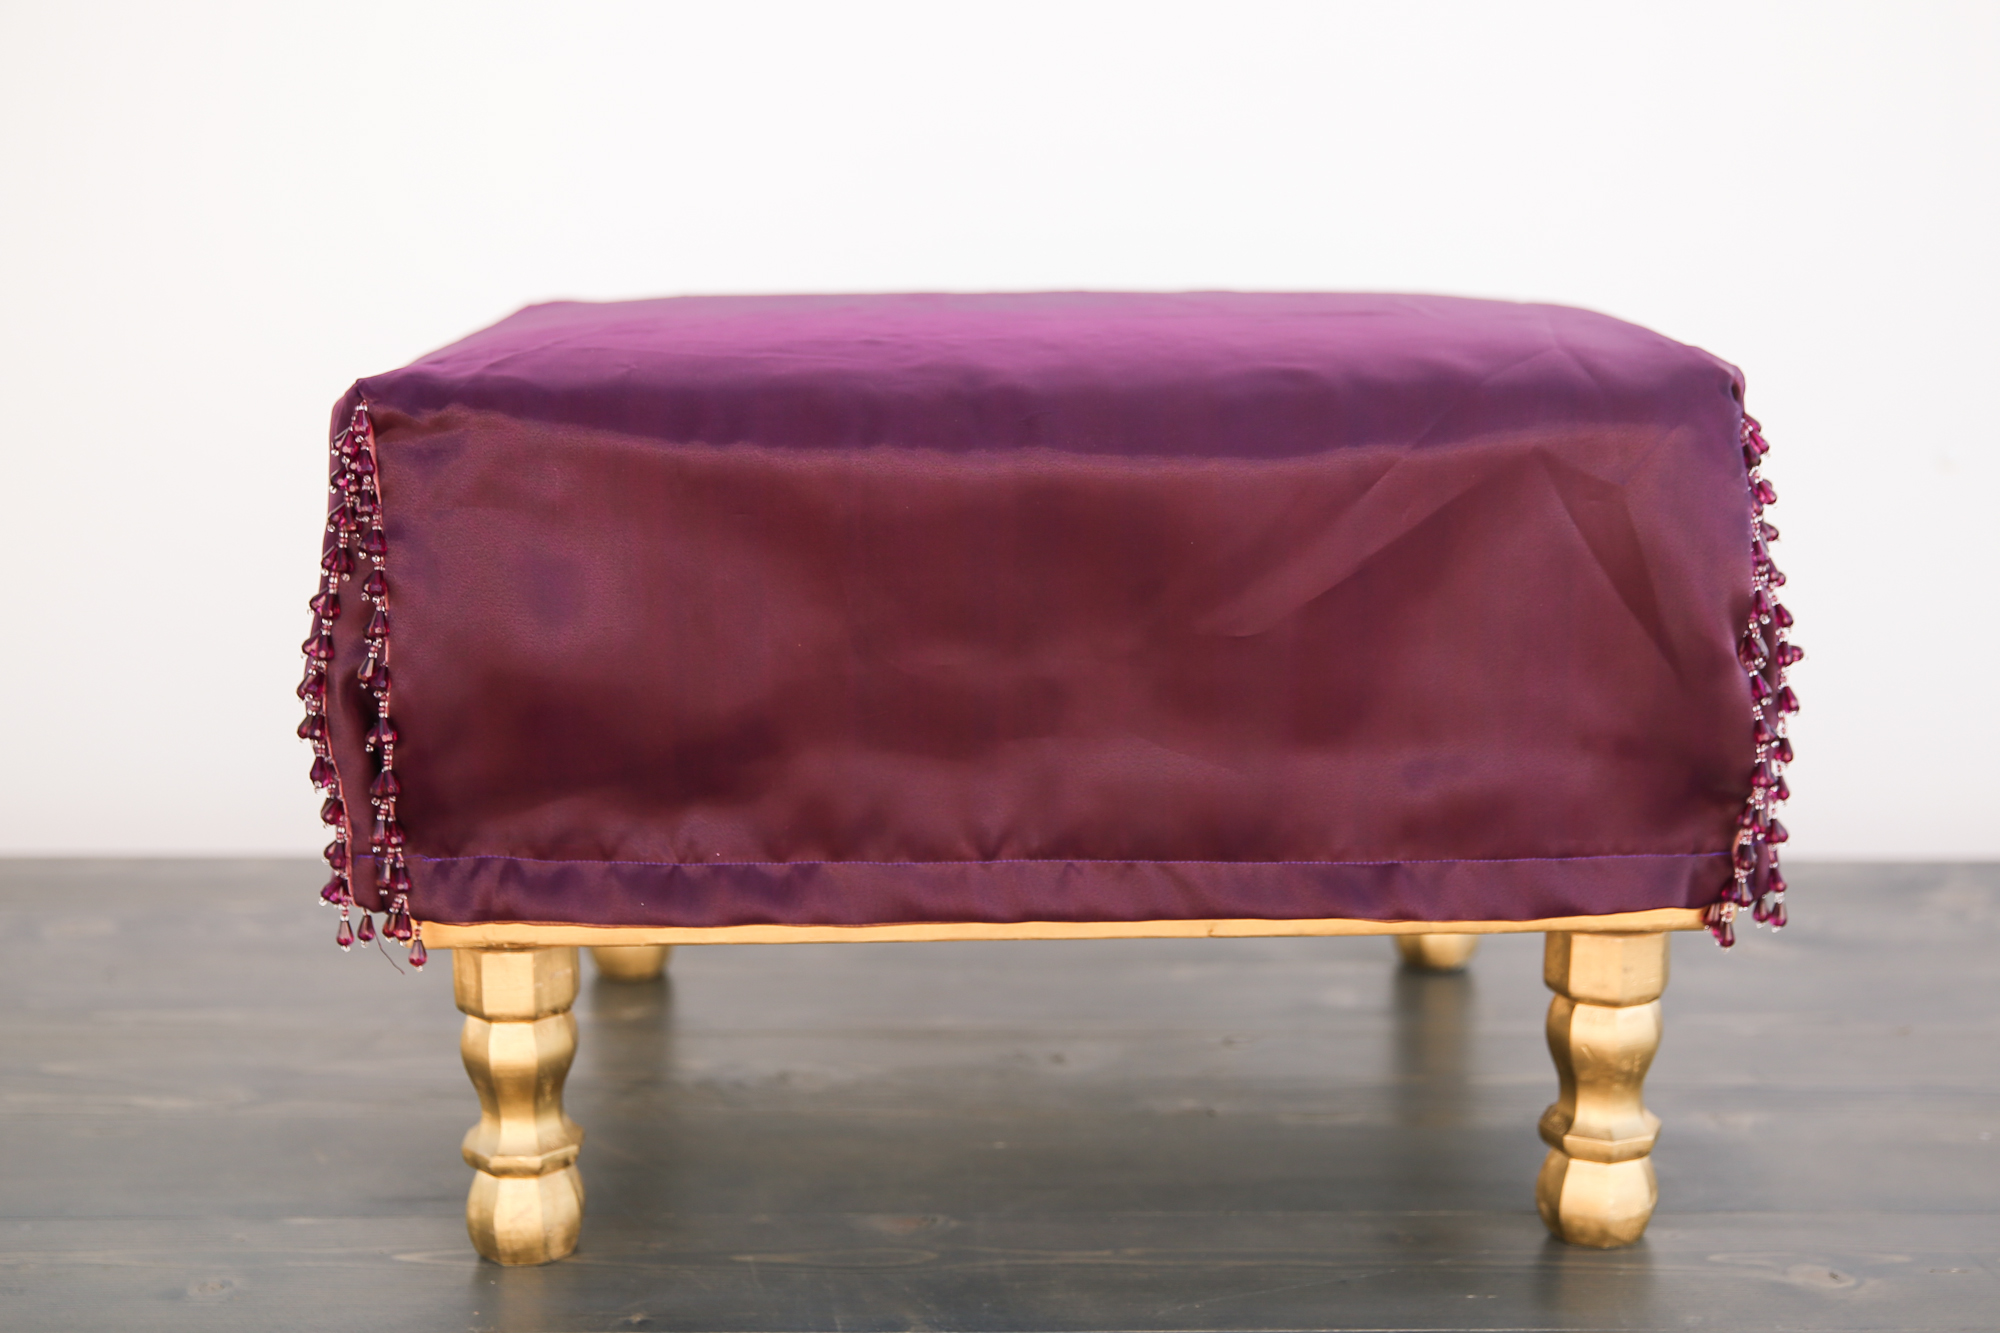 places to rent chair covers near me leather reception chairs gold leg ottoman with burgundy out of the dust rentals